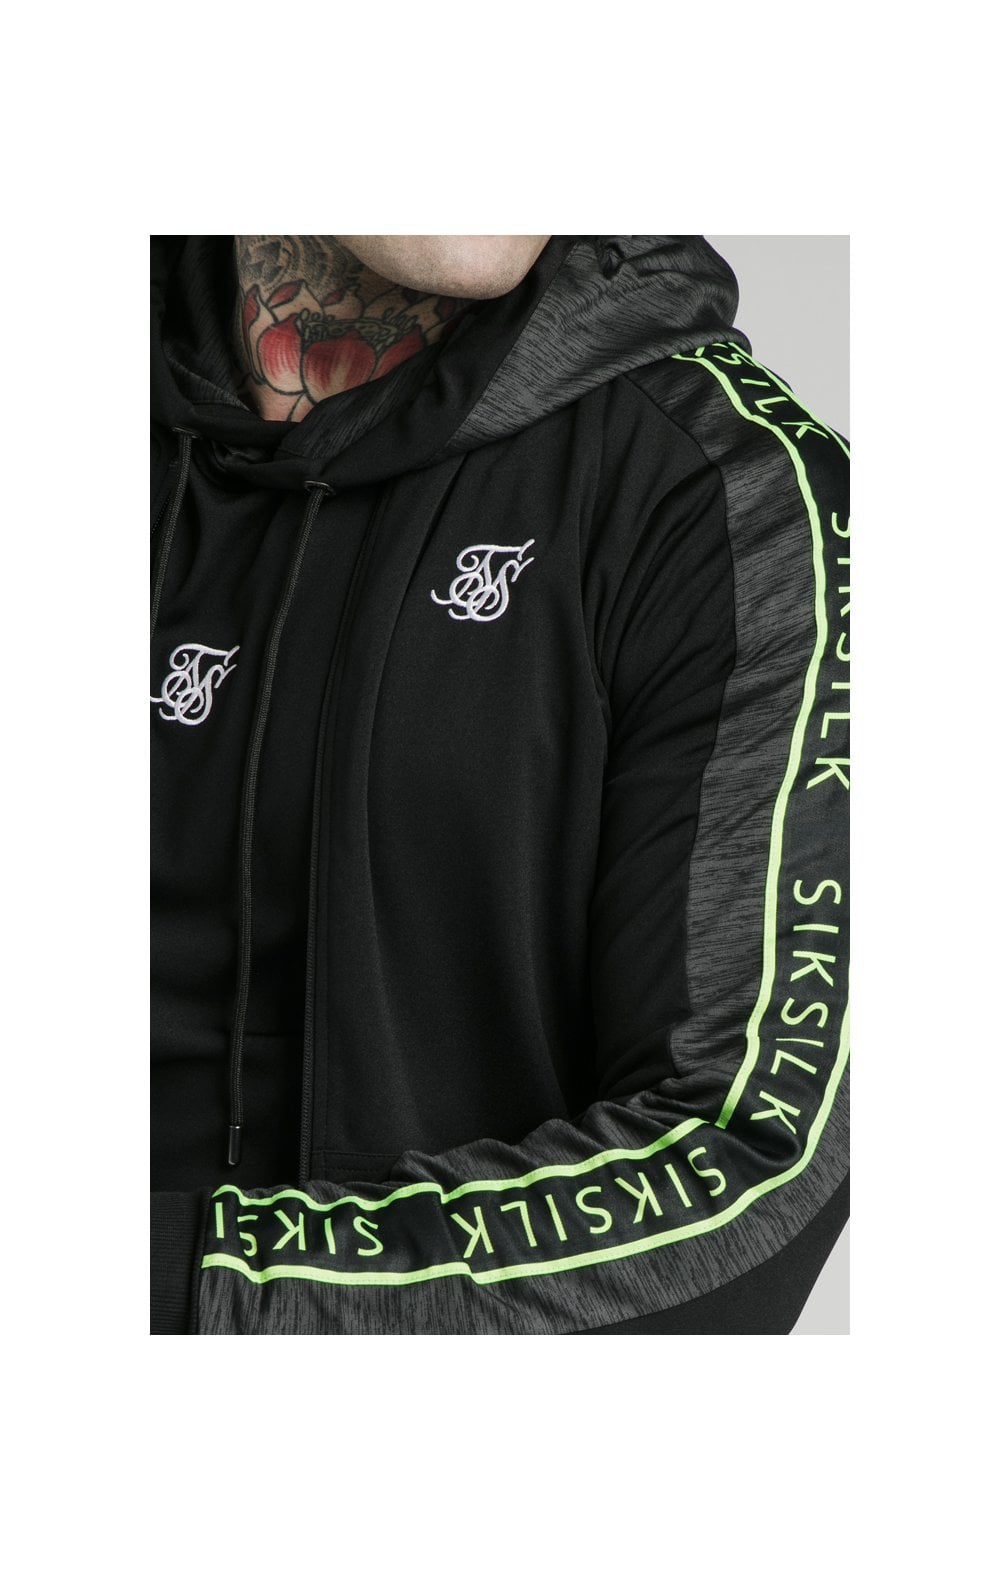 Load image into Gallery viewer, SikSilk Hyper Tape Bomber Jacket - Black & Neon Fluro (5)